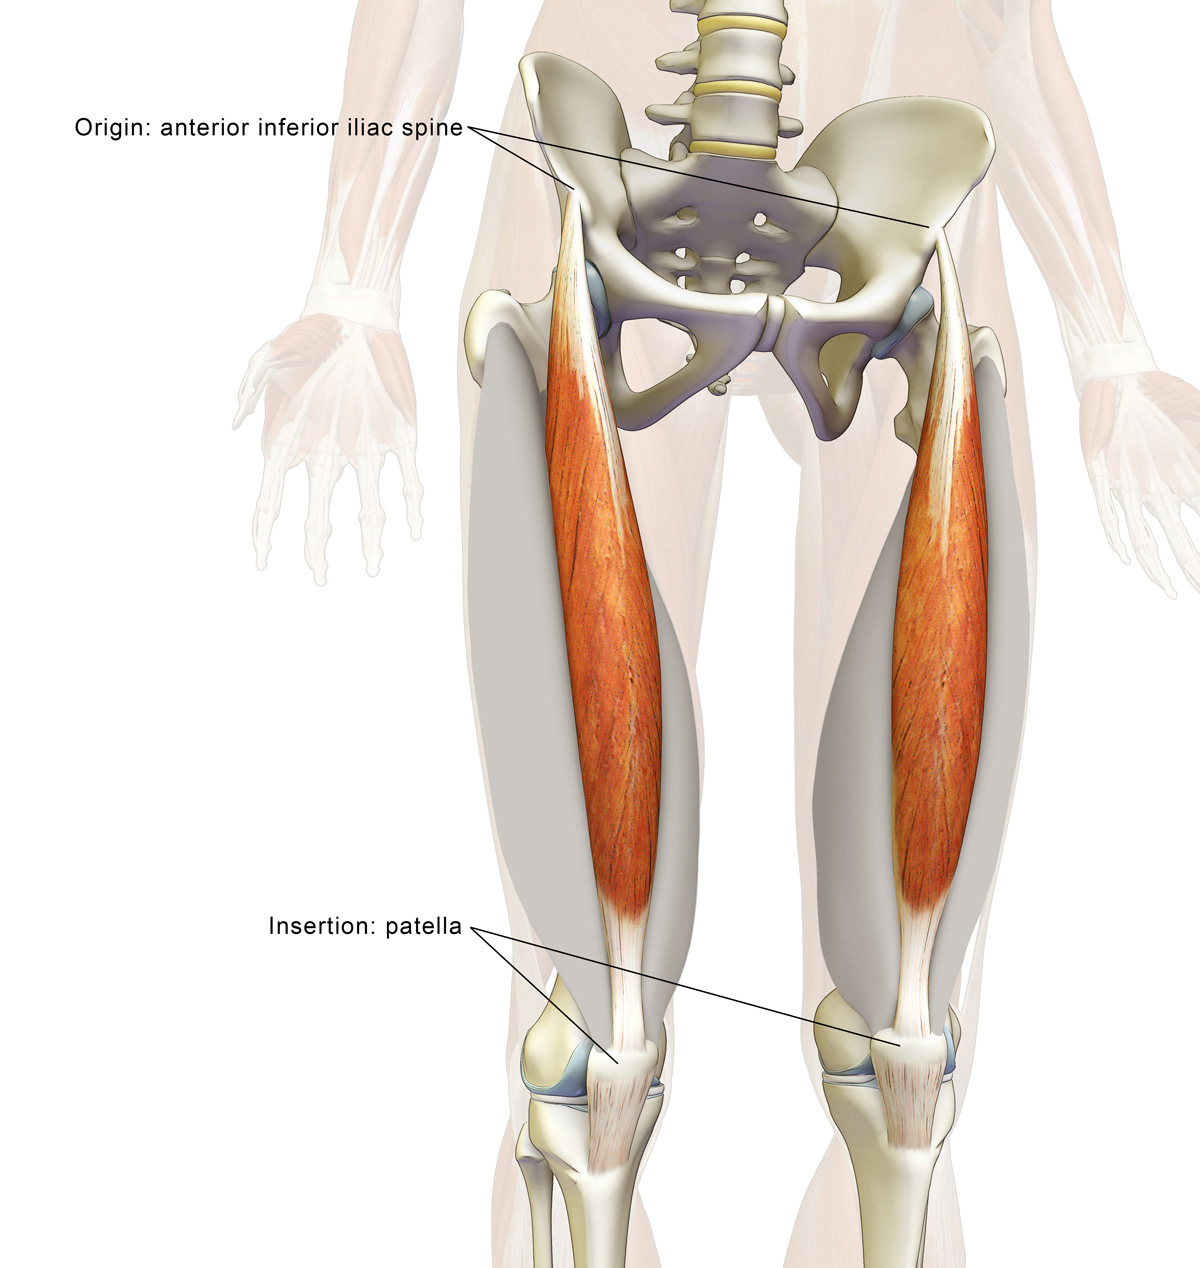 Yoga Anatomy: The Rectus Femoris Muscle in Yoga | YogaUOnline